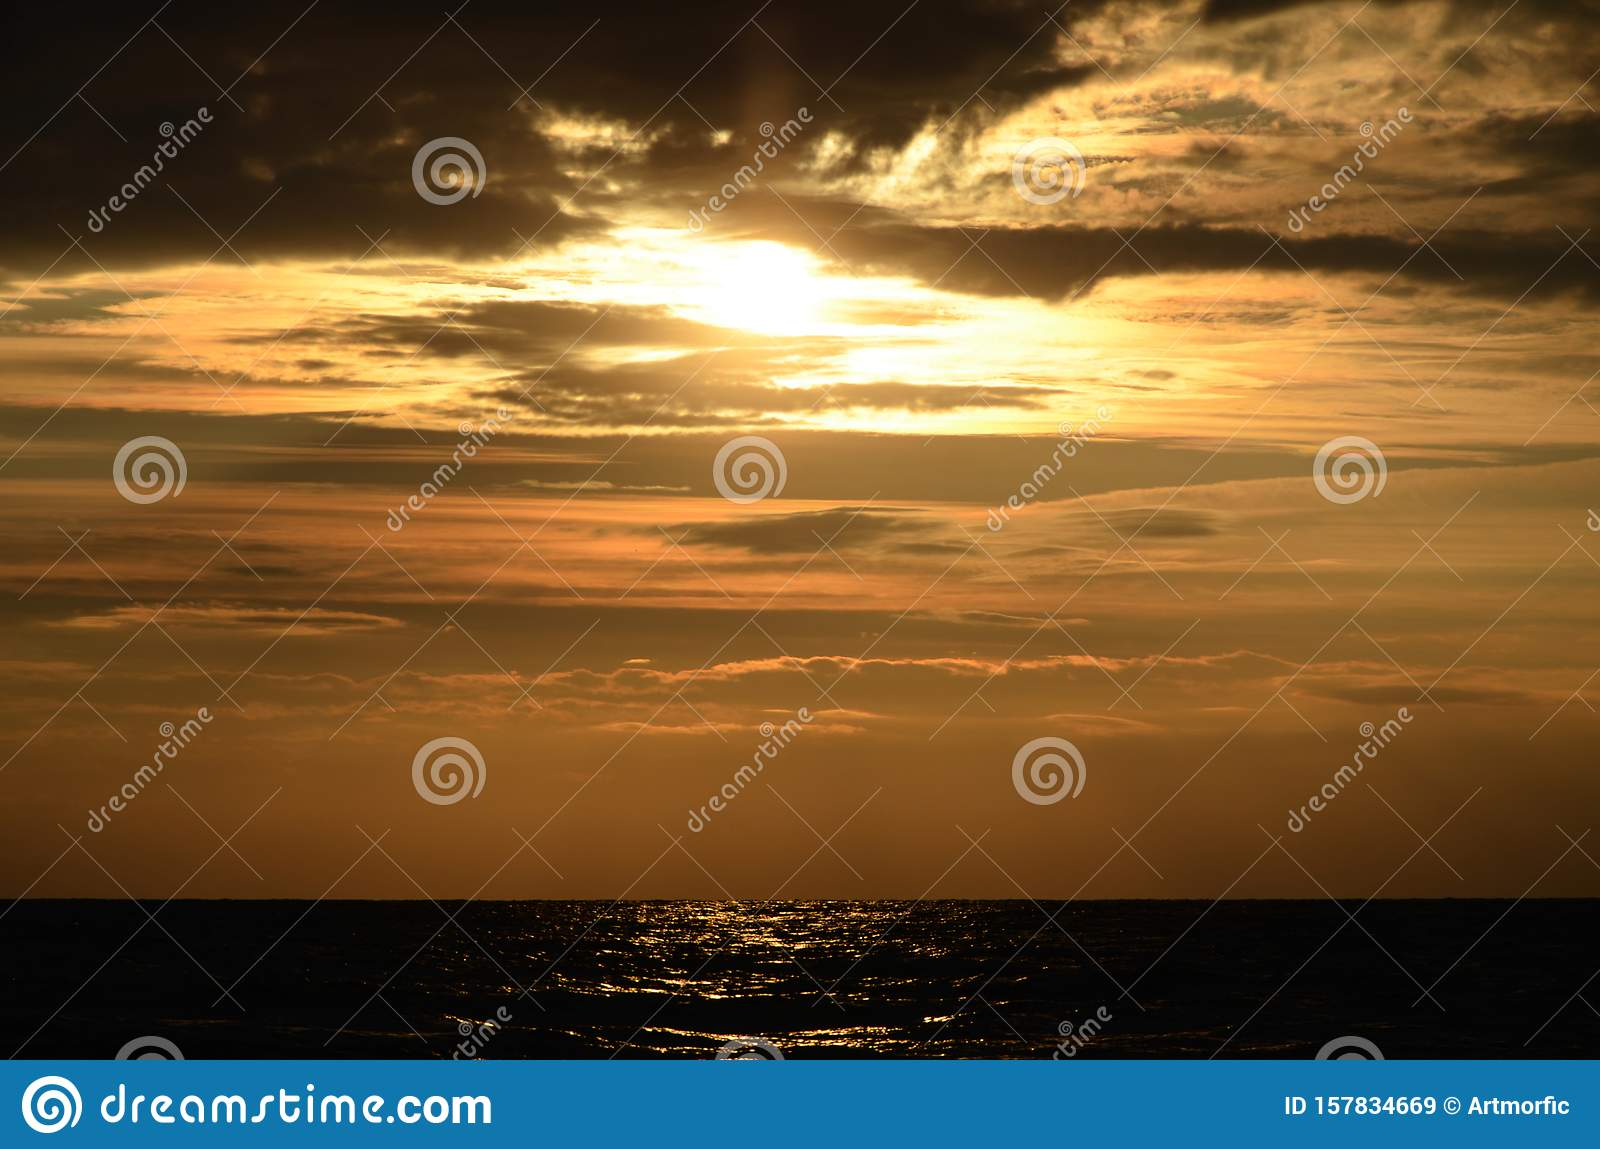 Seashore sky orange tones clouds and sea waves beautiful nature bright sunset dark water